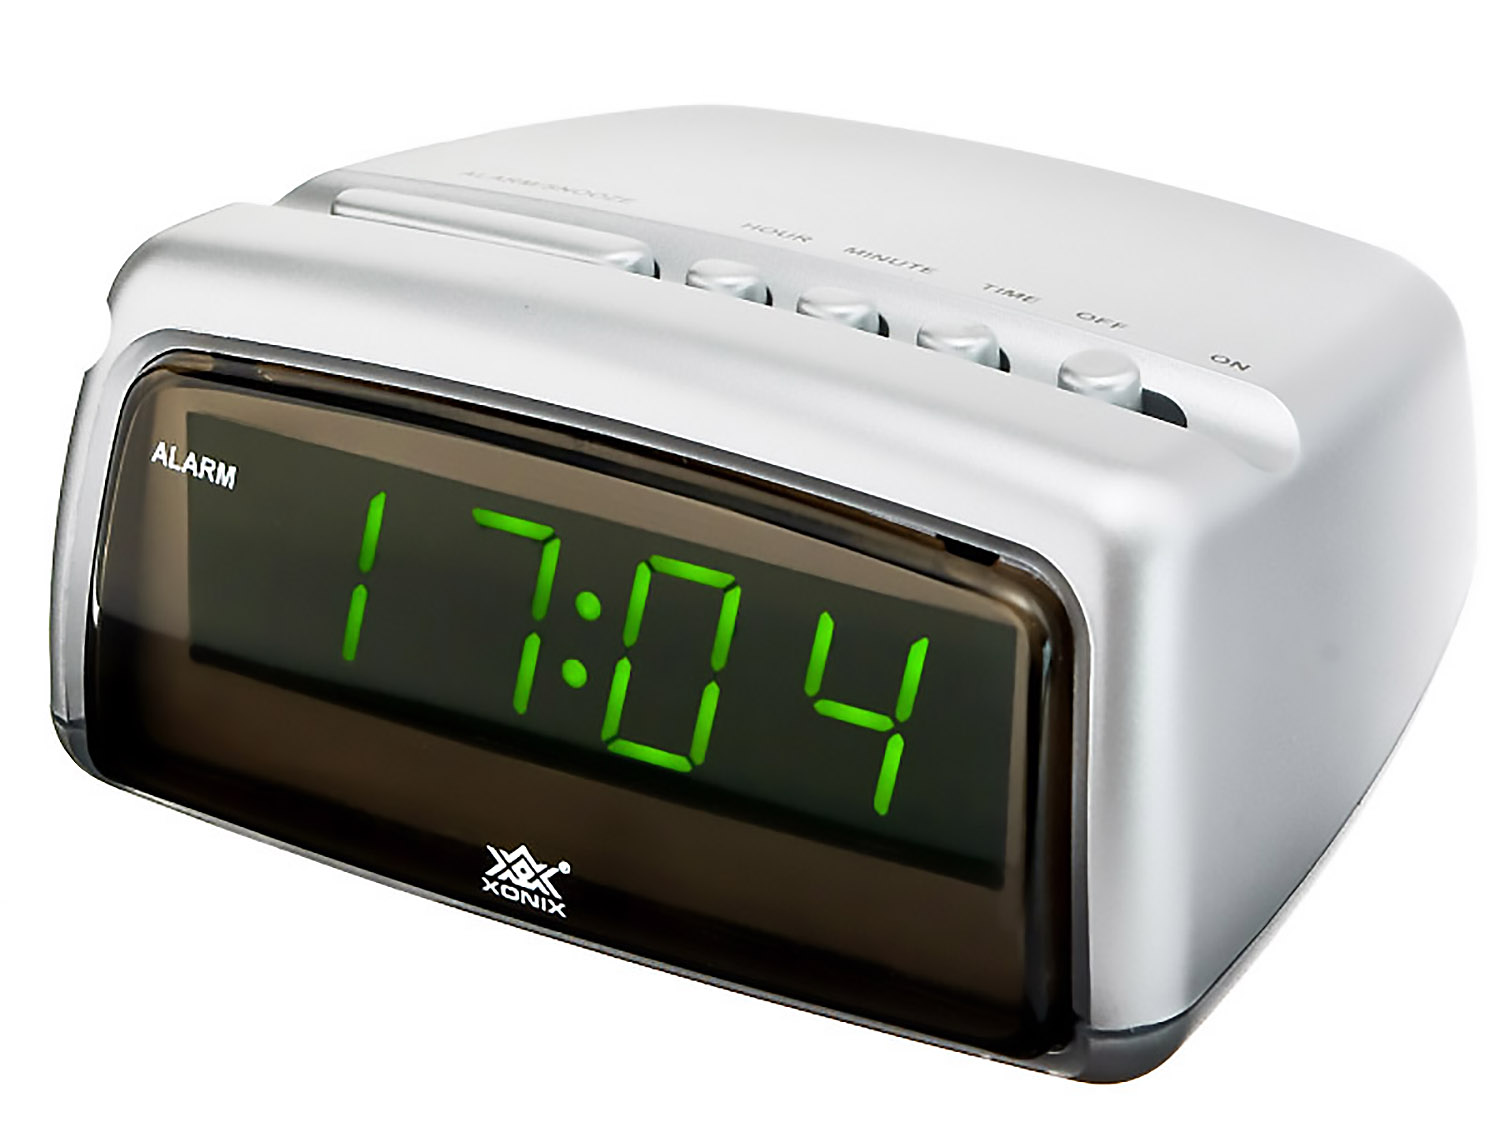 modern alarm clock xonix snooze digital led display mains power ebay. Black Bedroom Furniture Sets. Home Design Ideas